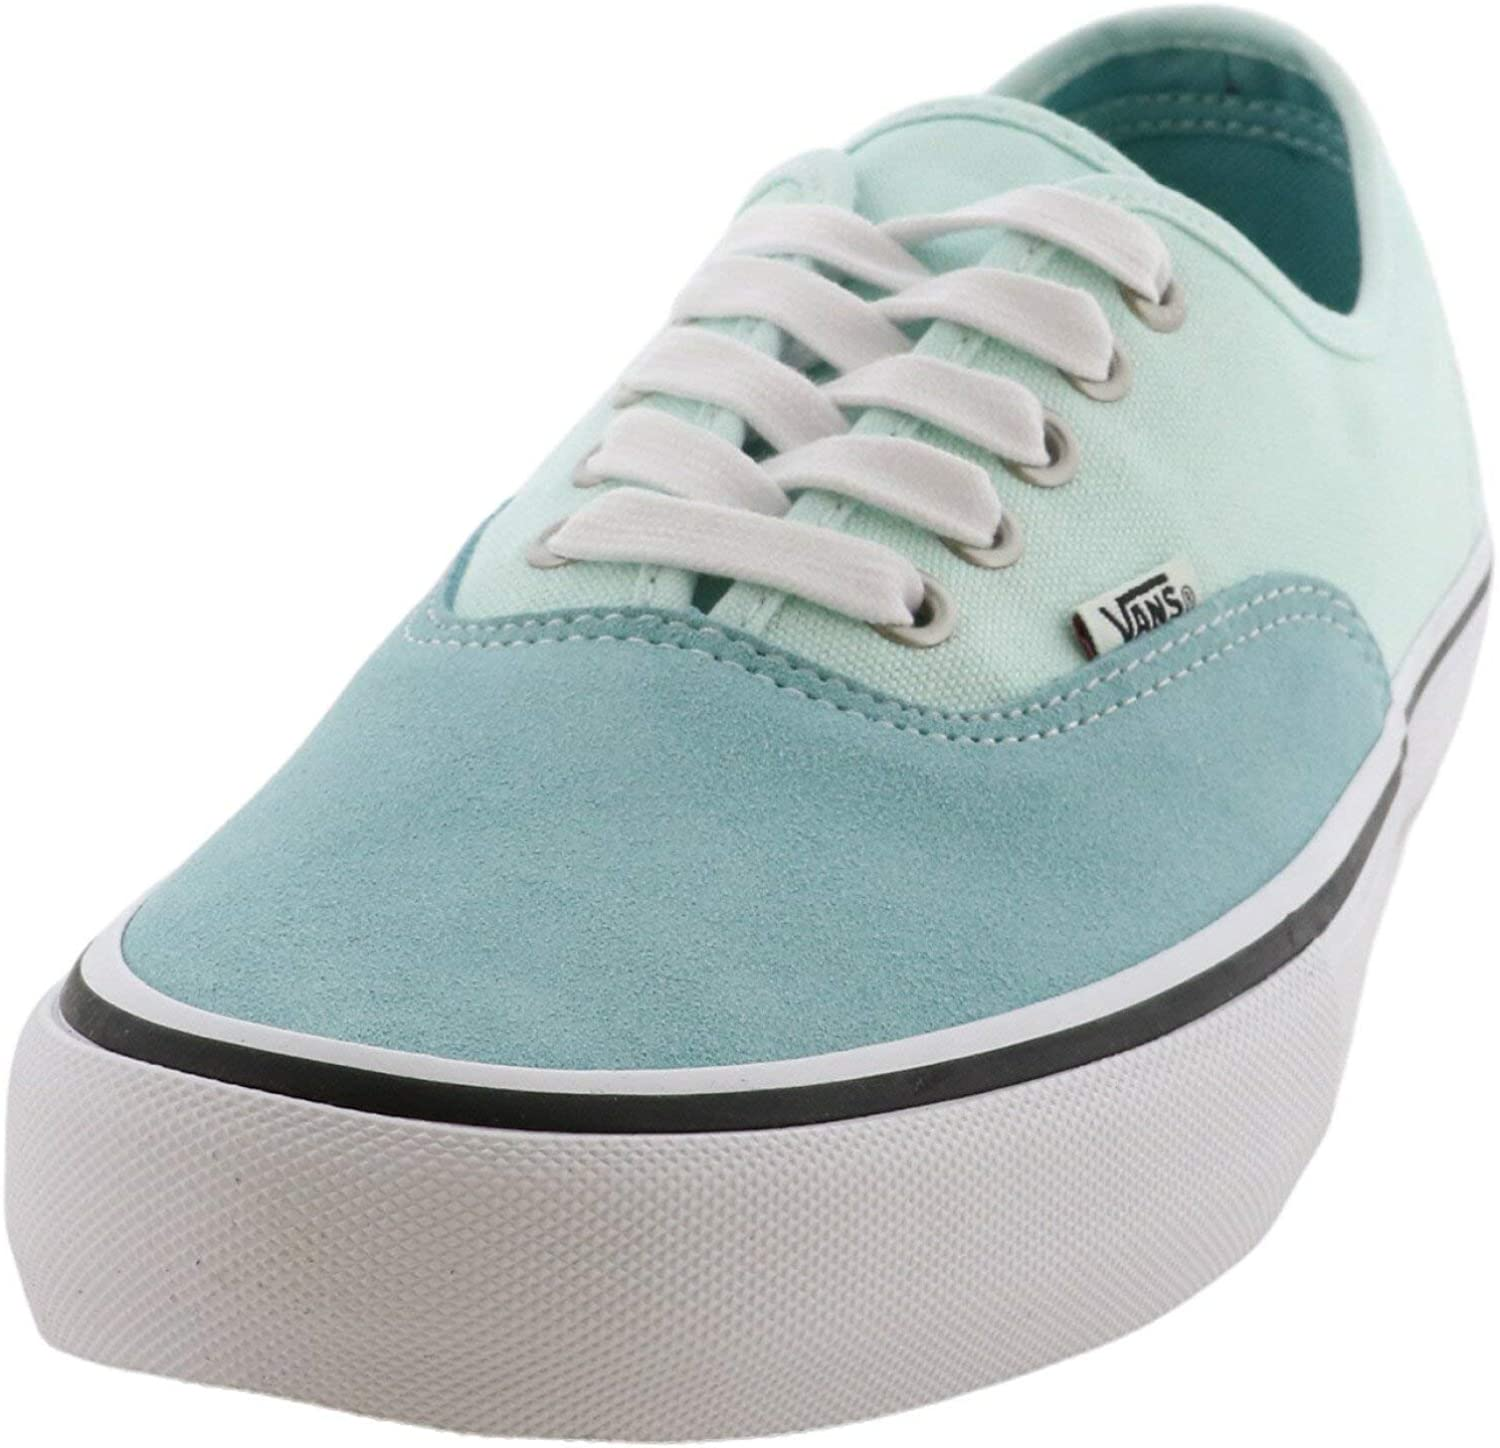 Authentic Pro Ankle-High Suede